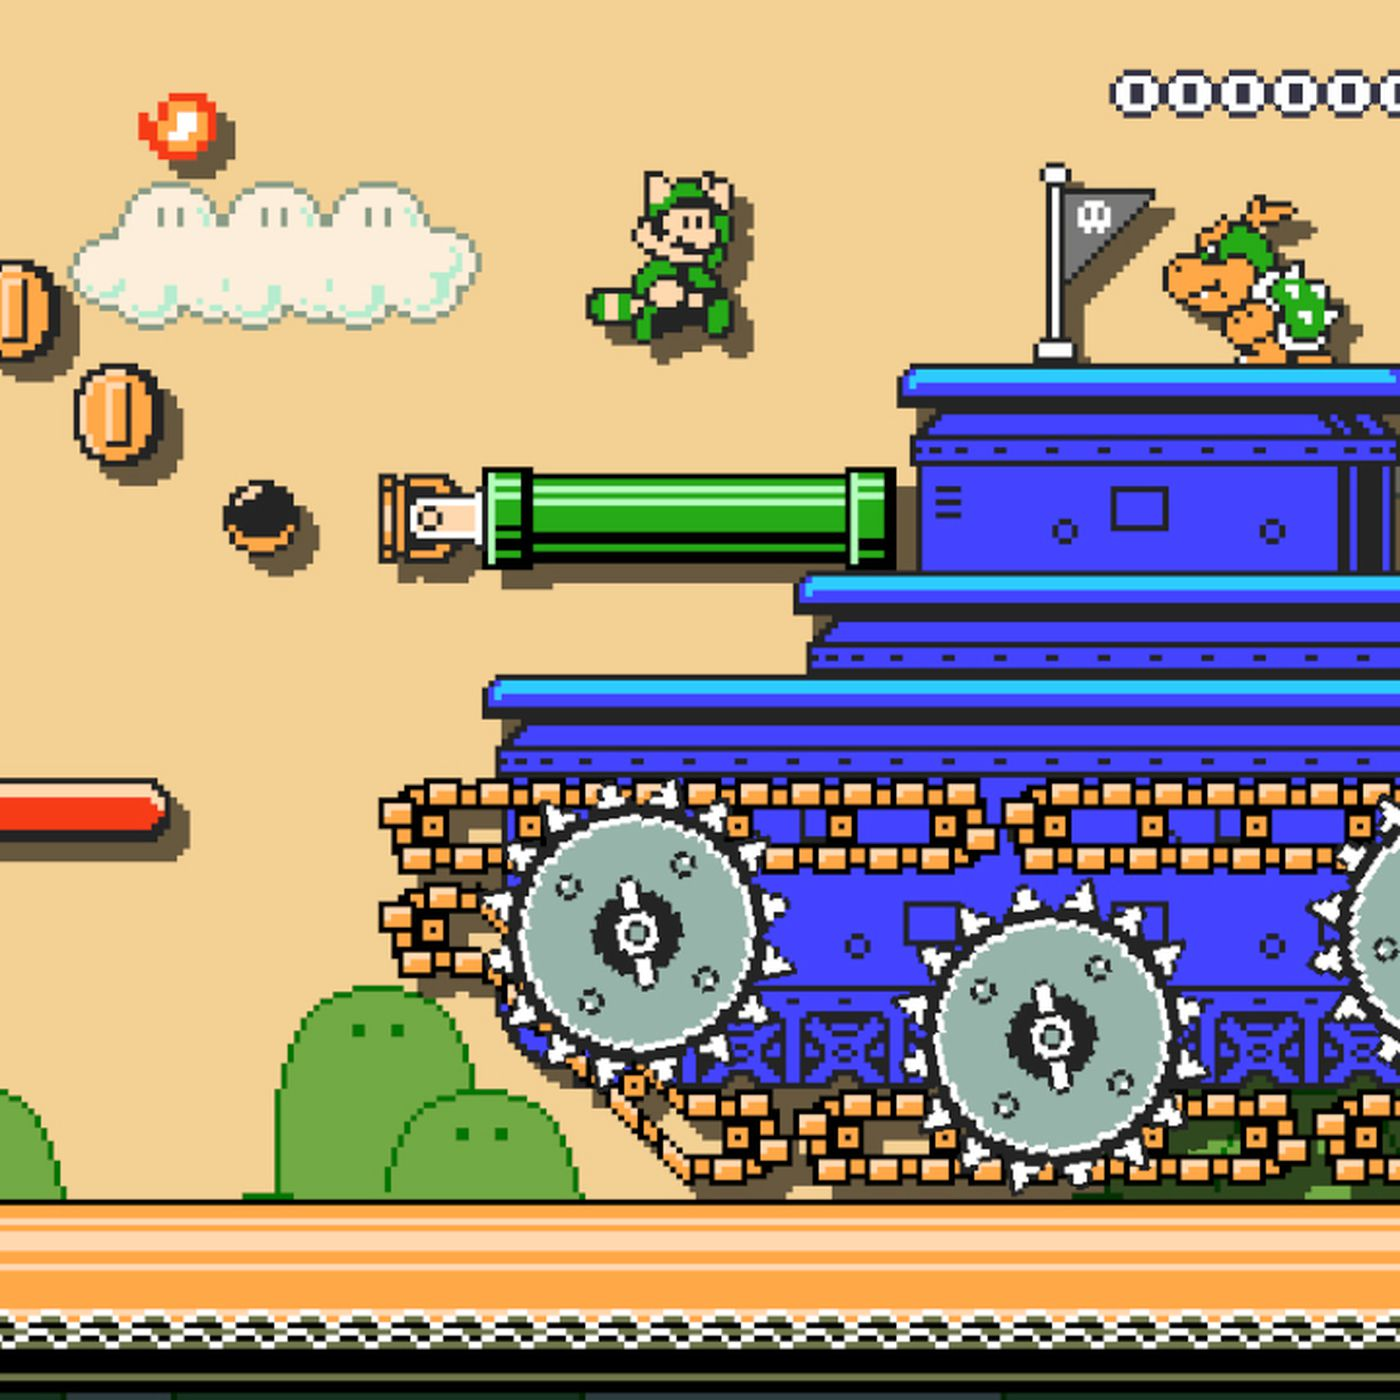 Super Mario Maker 2 getting online multiplayer with friends